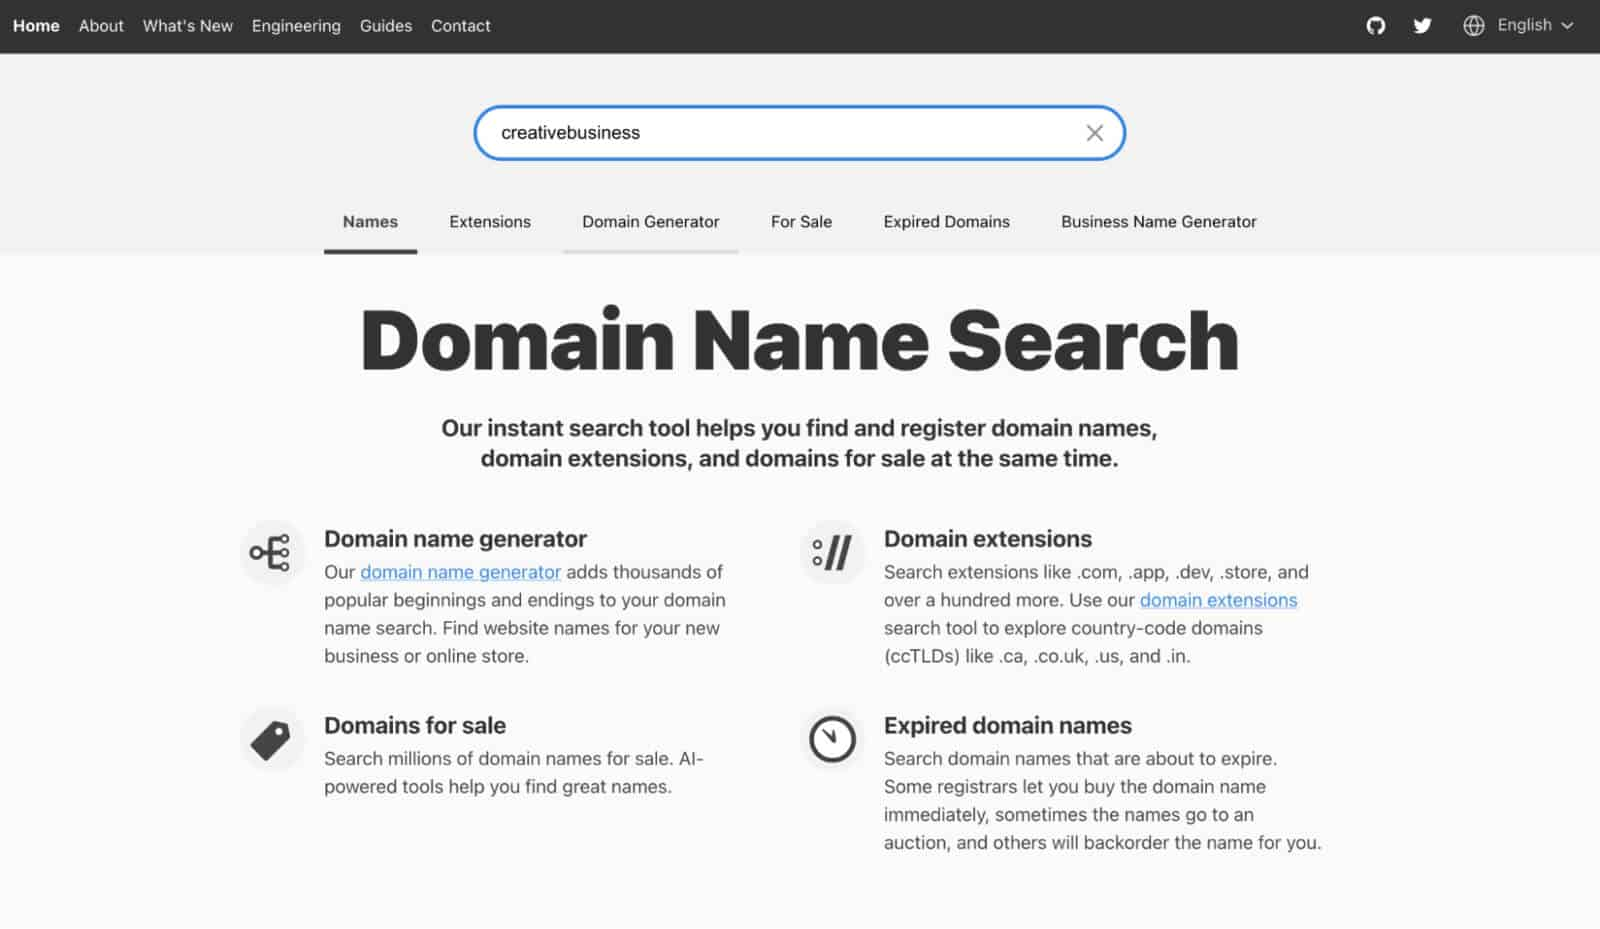 How to come up with a domain name for a small business website